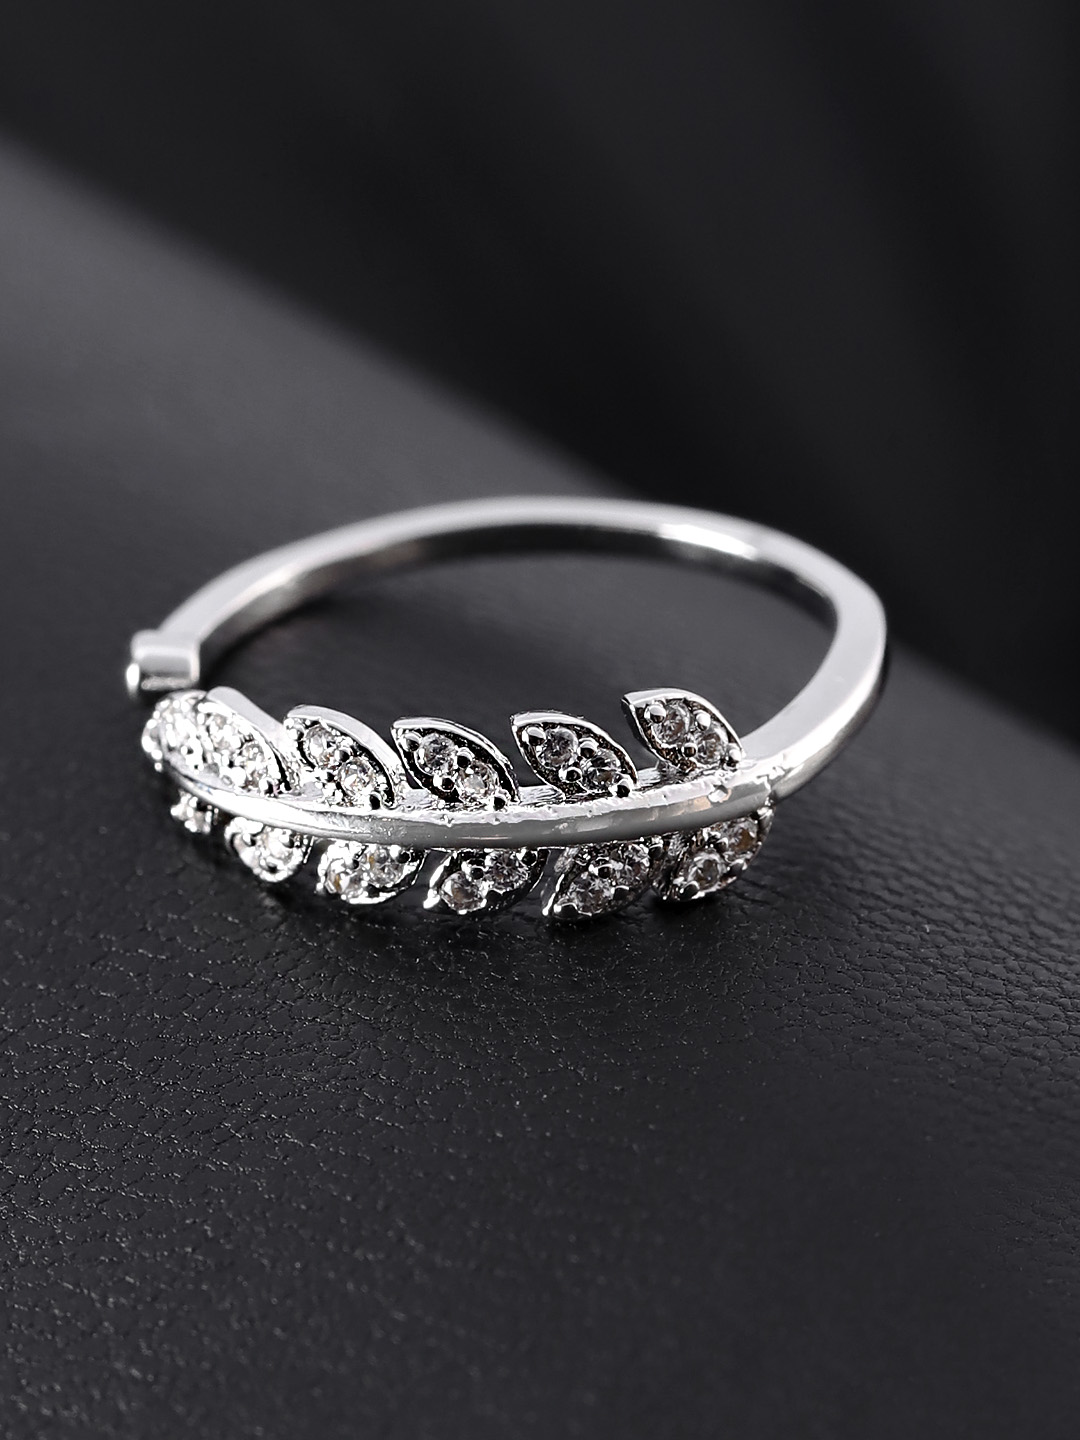 Jewels Galaxy Silver-Plated Stone Studded Handcrafted Adjustable Finger Ring Price in India